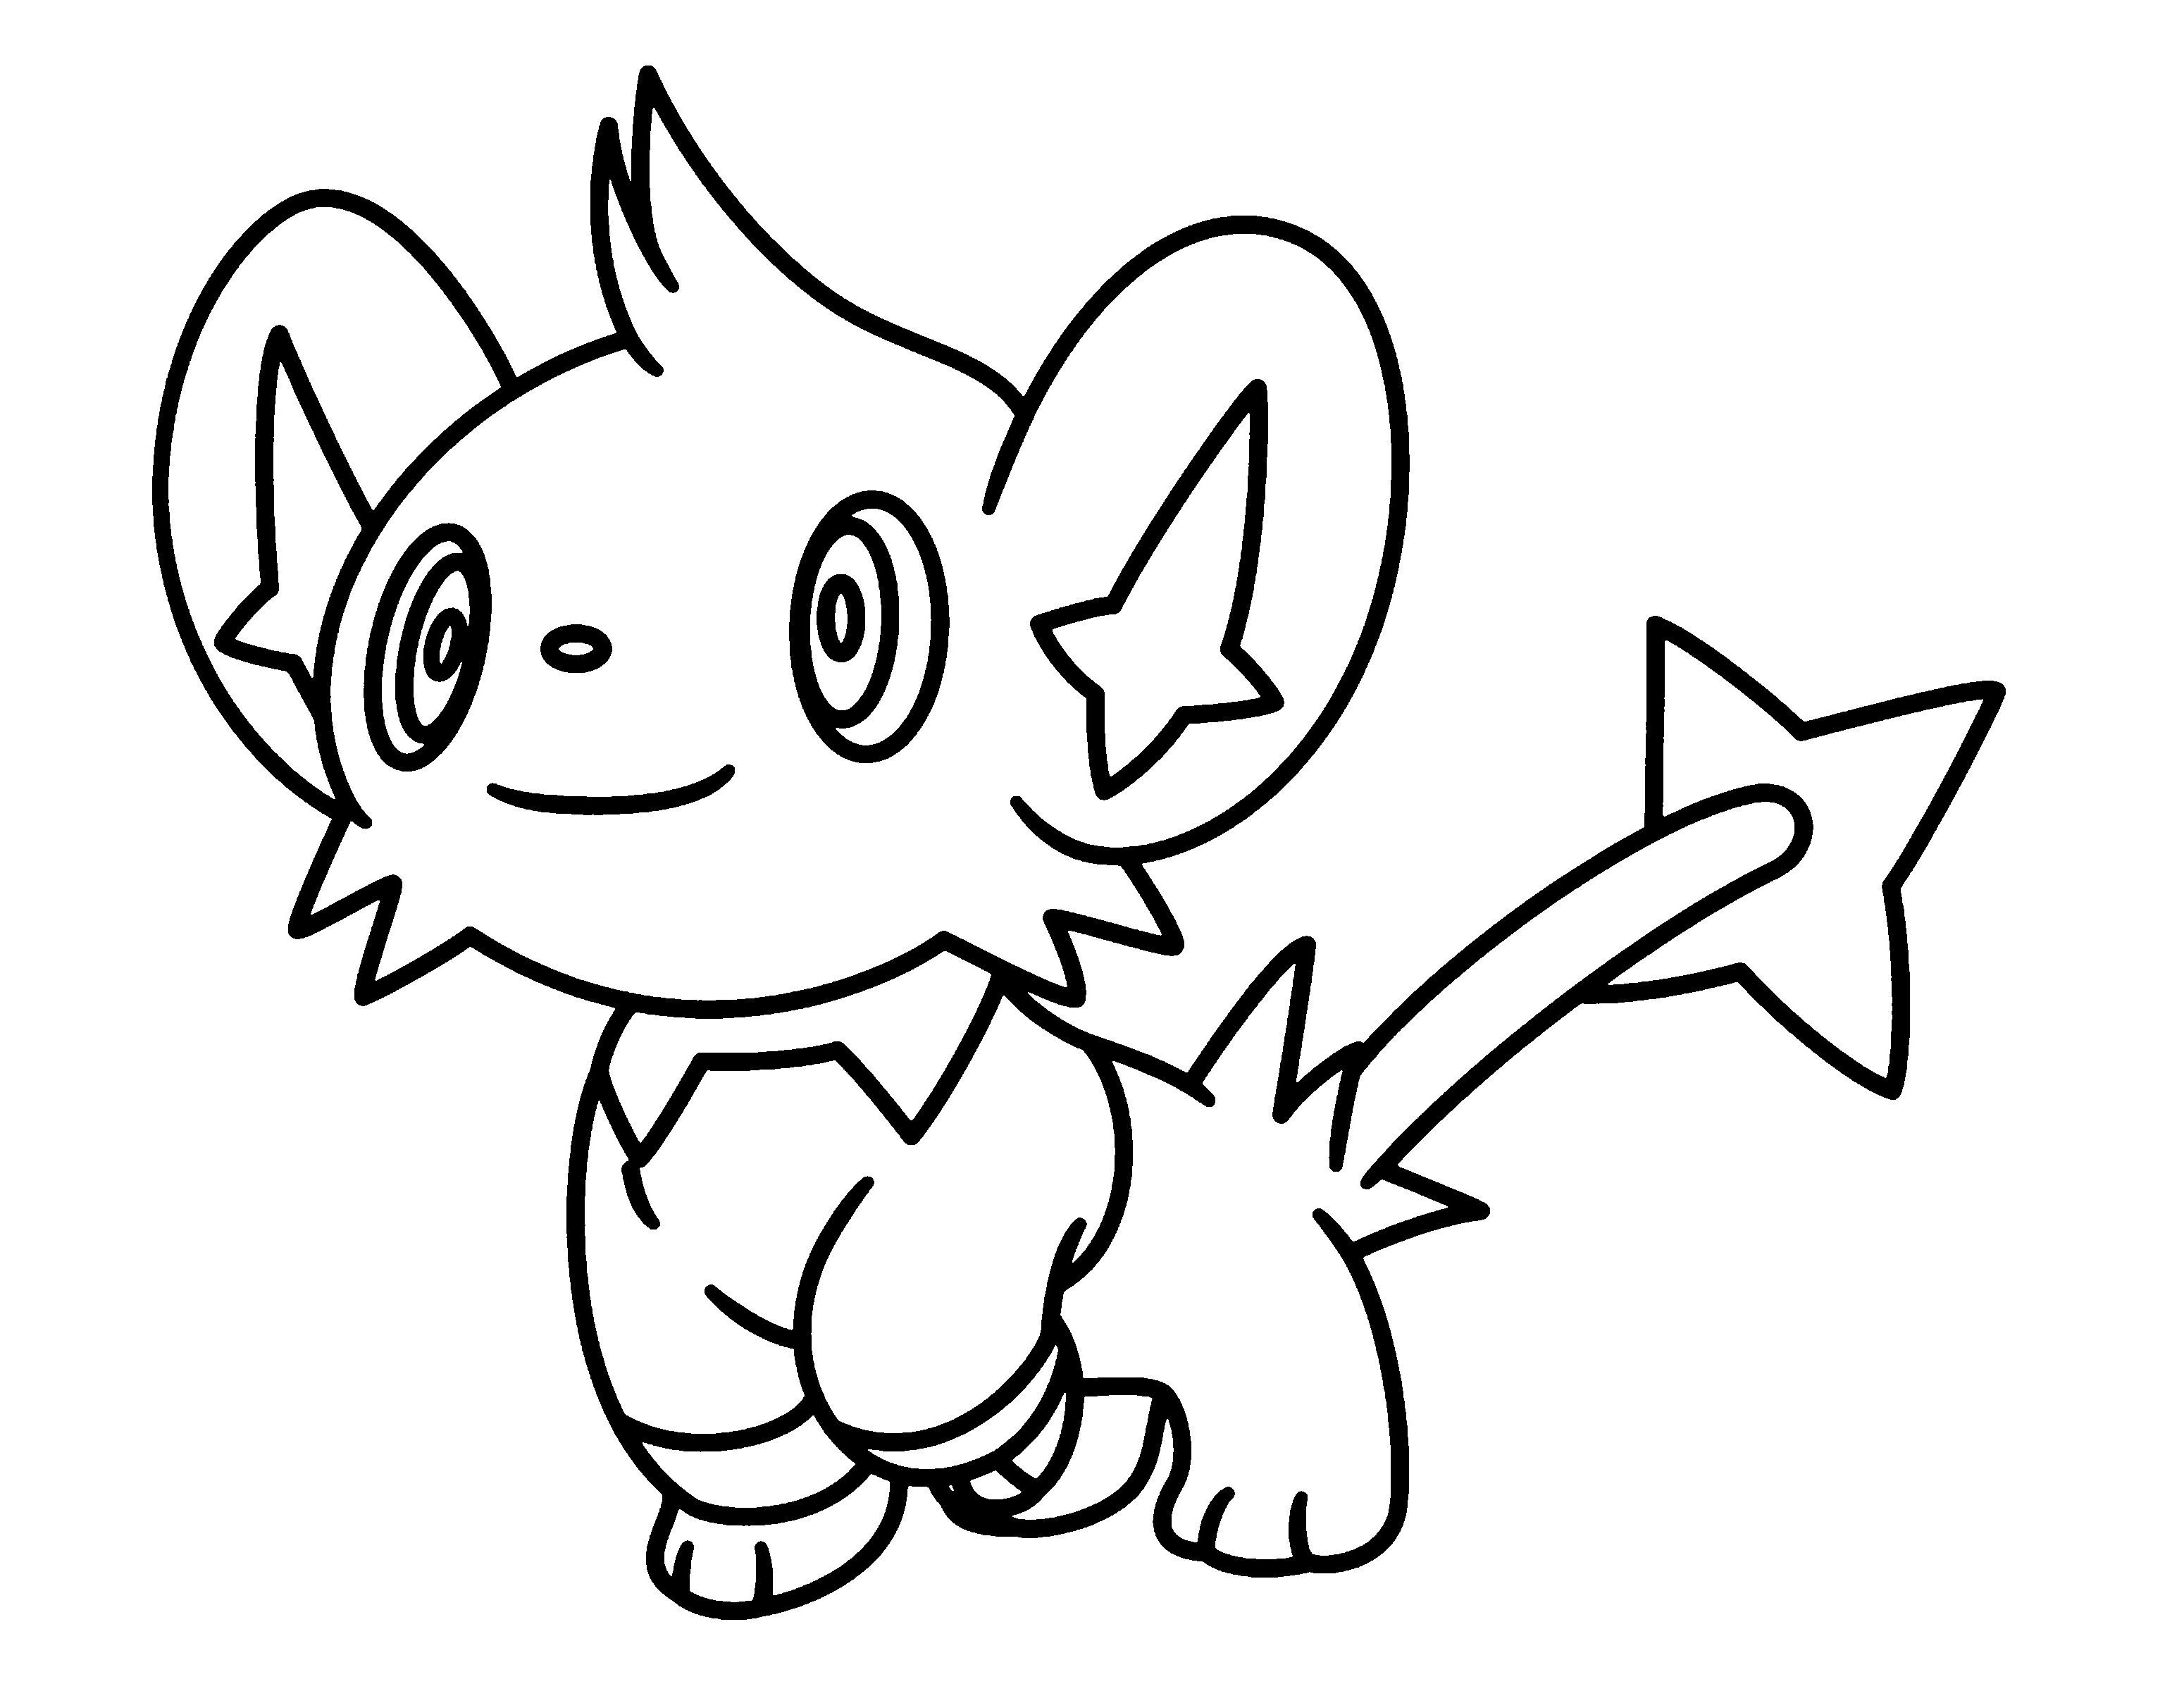 3100x2400 Pokemon Shinx Coloring Pages Printable Coloring For Kids